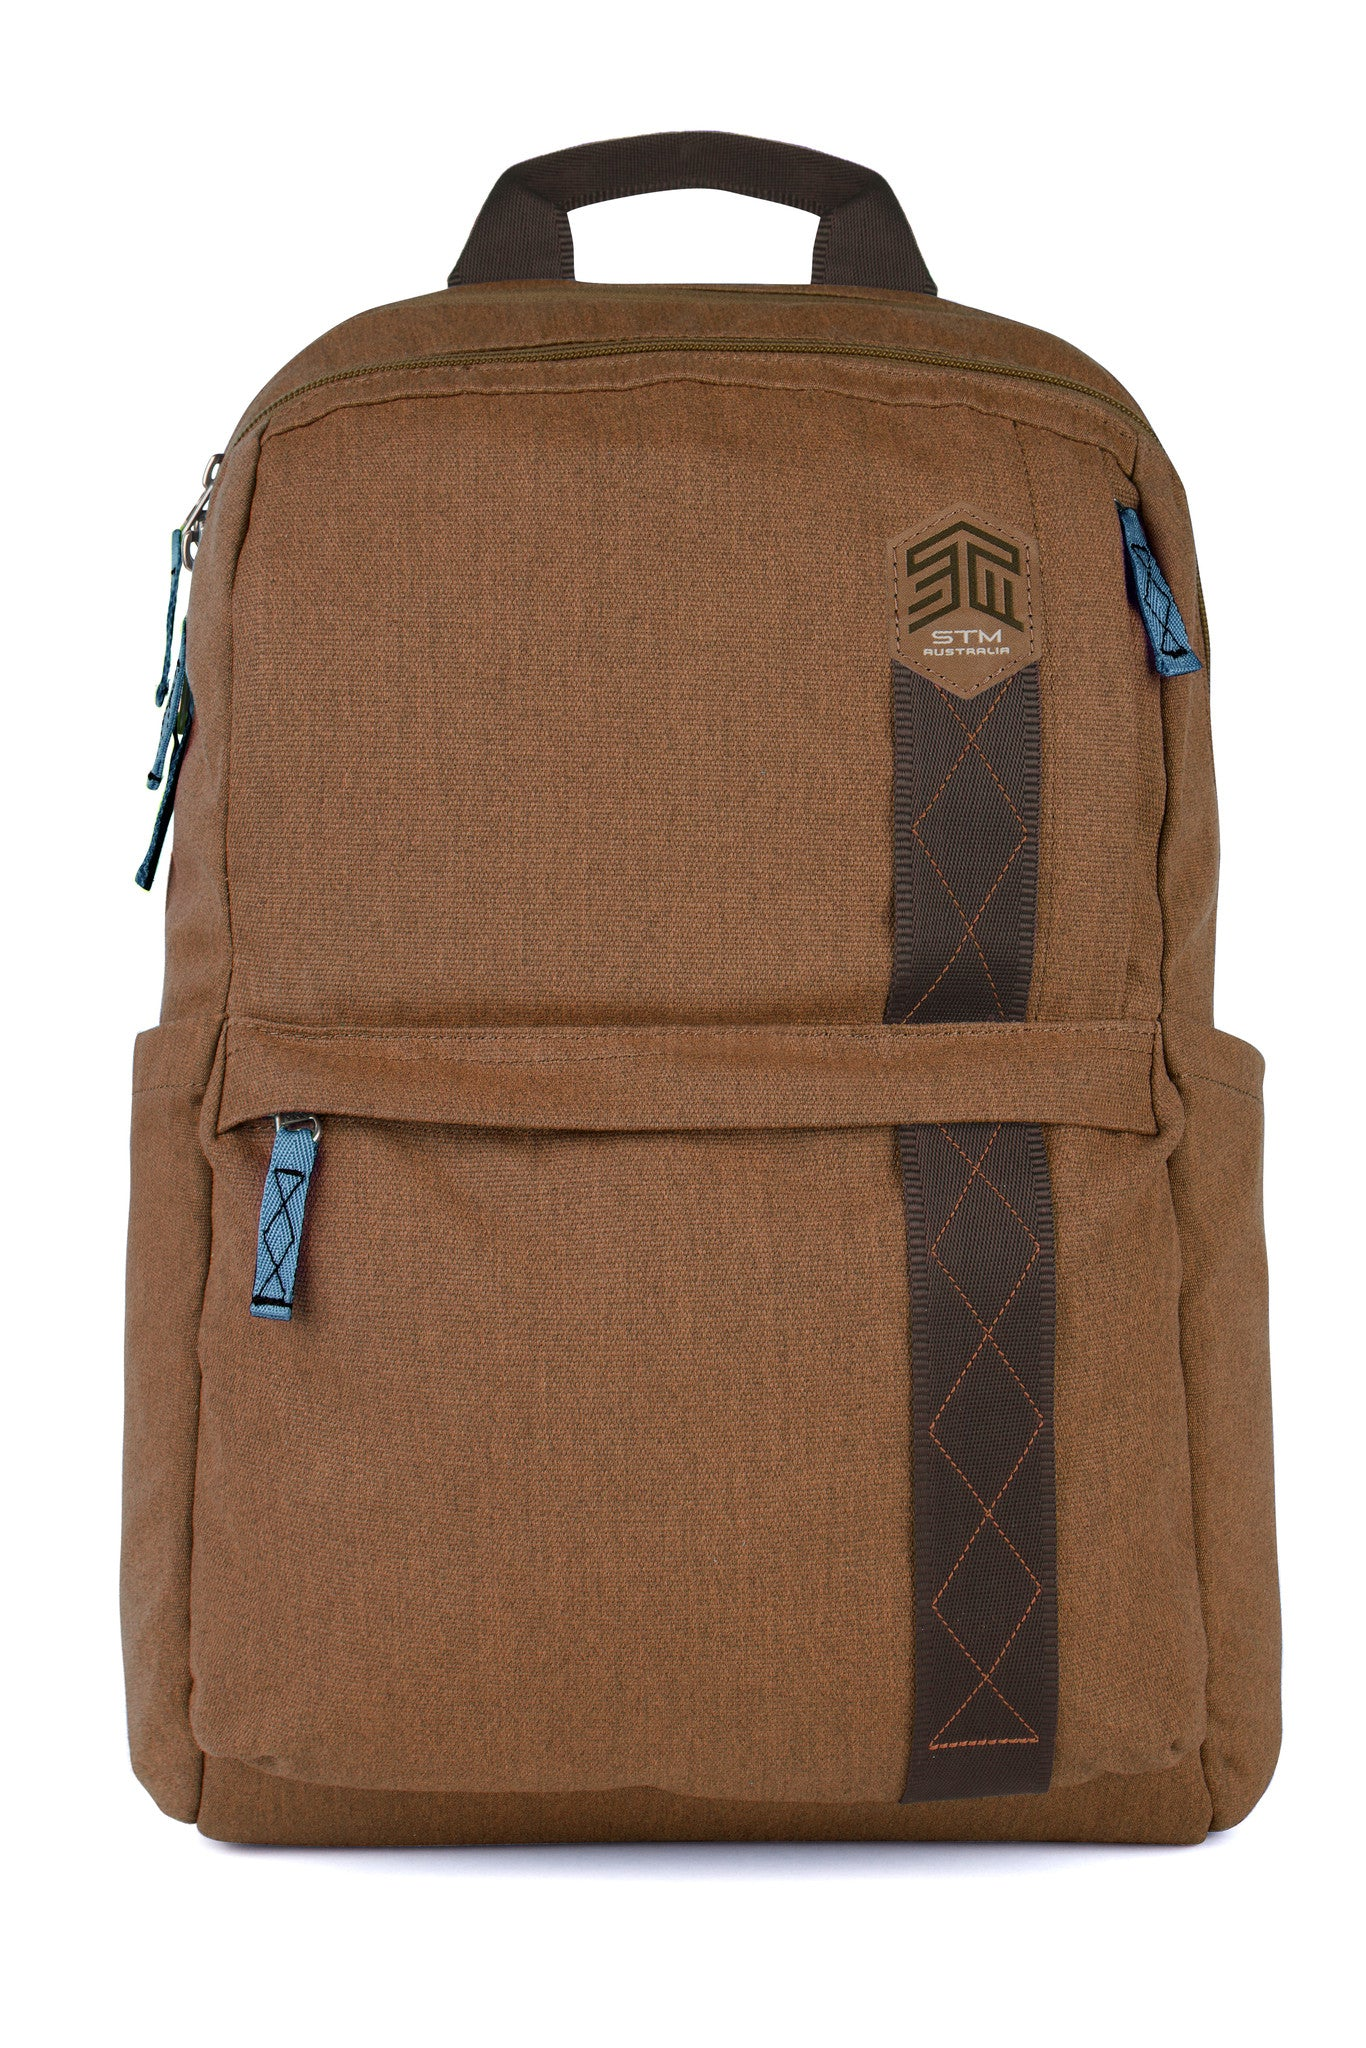 STM Banks backpack Polyester Brown